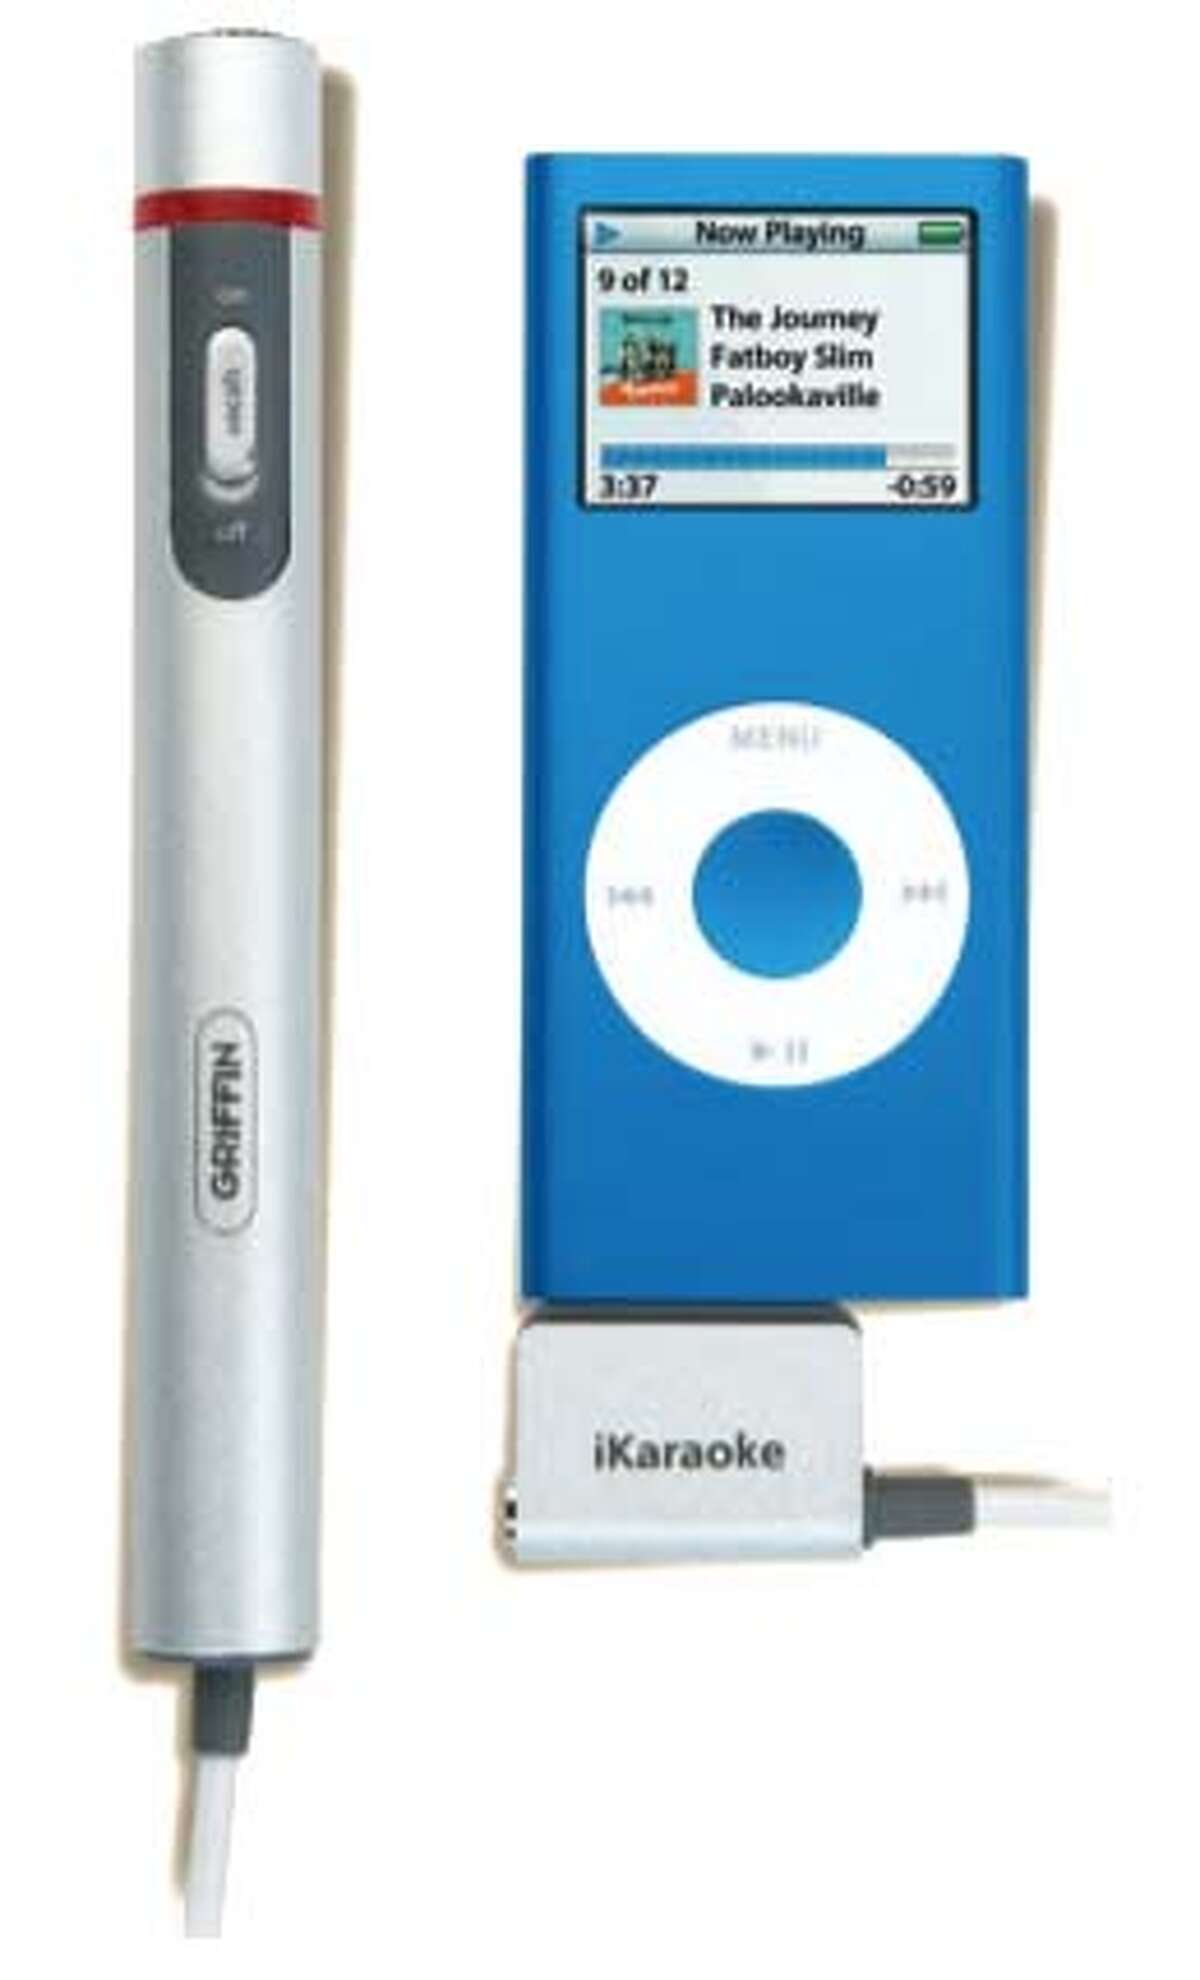 The iKaraoke connects to an iPod. It can soften vocals and pump up background music.